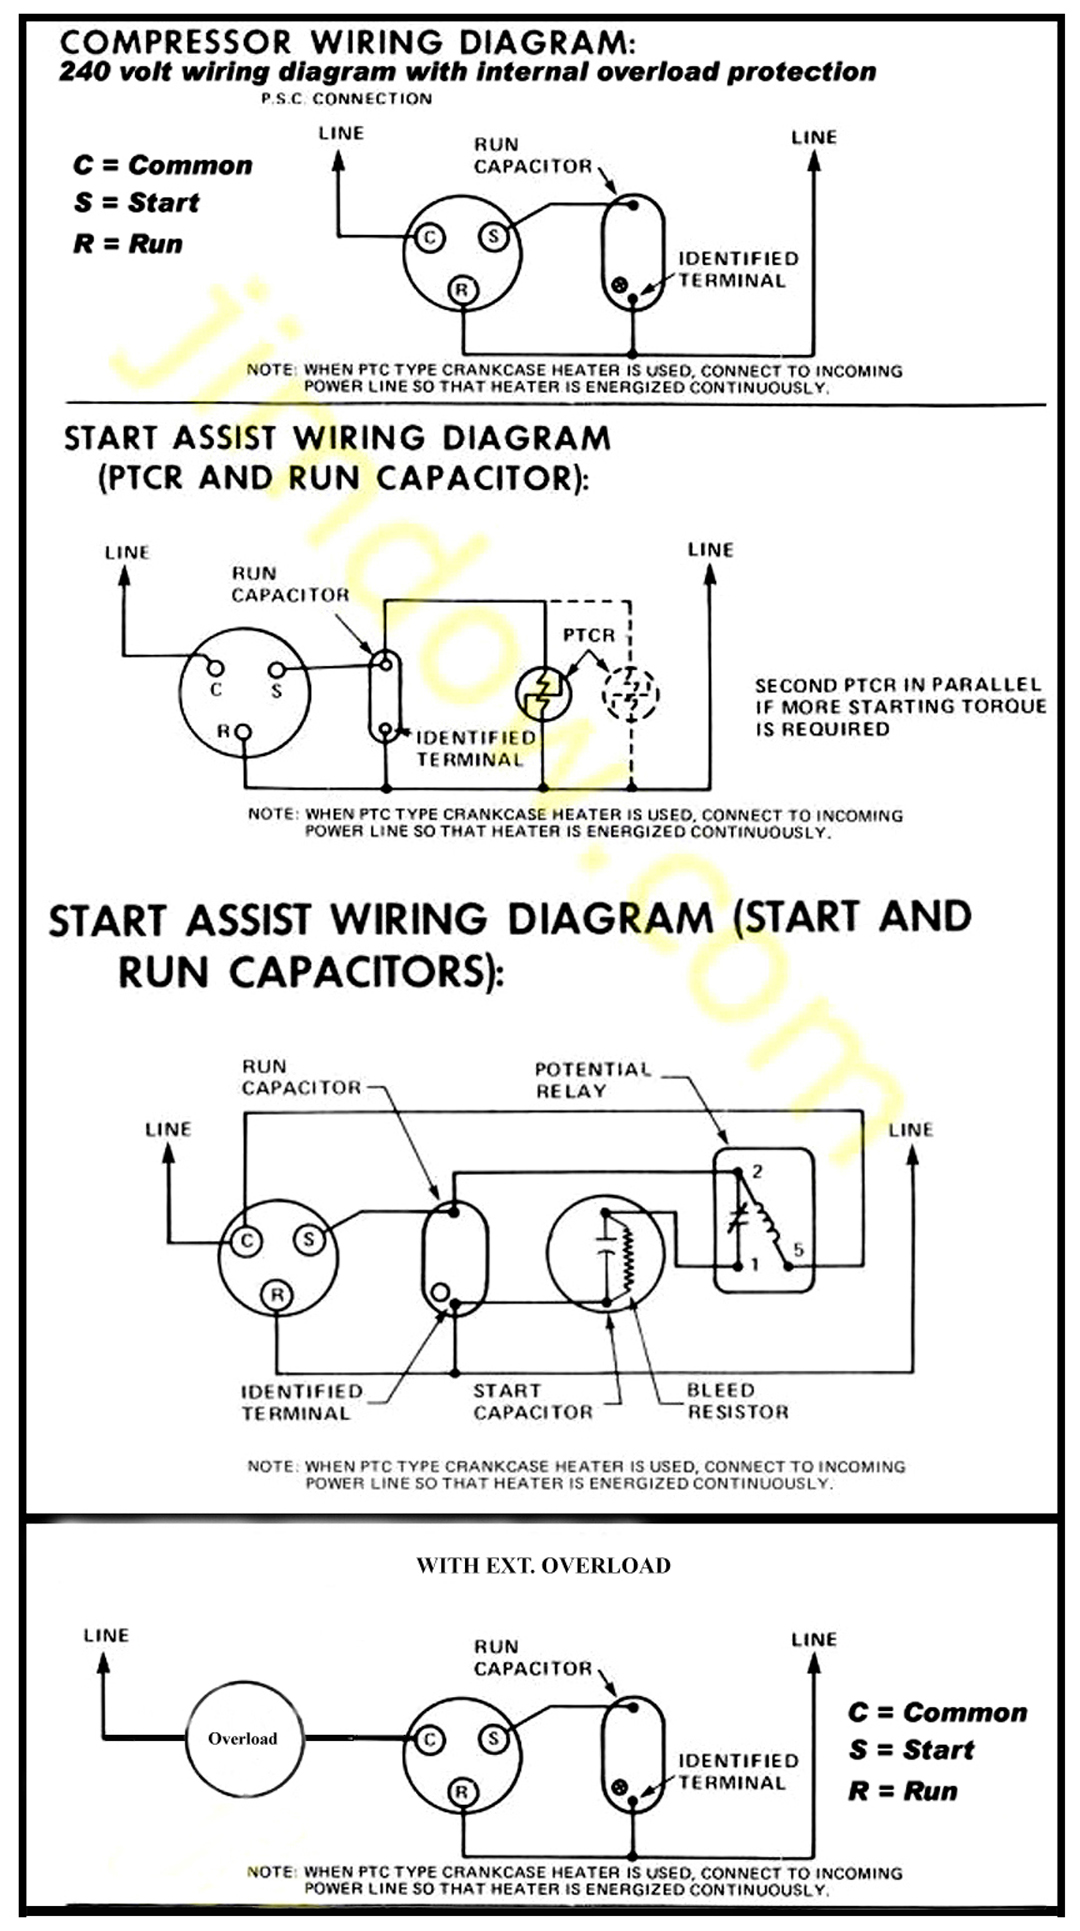 Wiring Diagram For Bristol Compressor Data Air Starter Hvac Conditioner General Spud